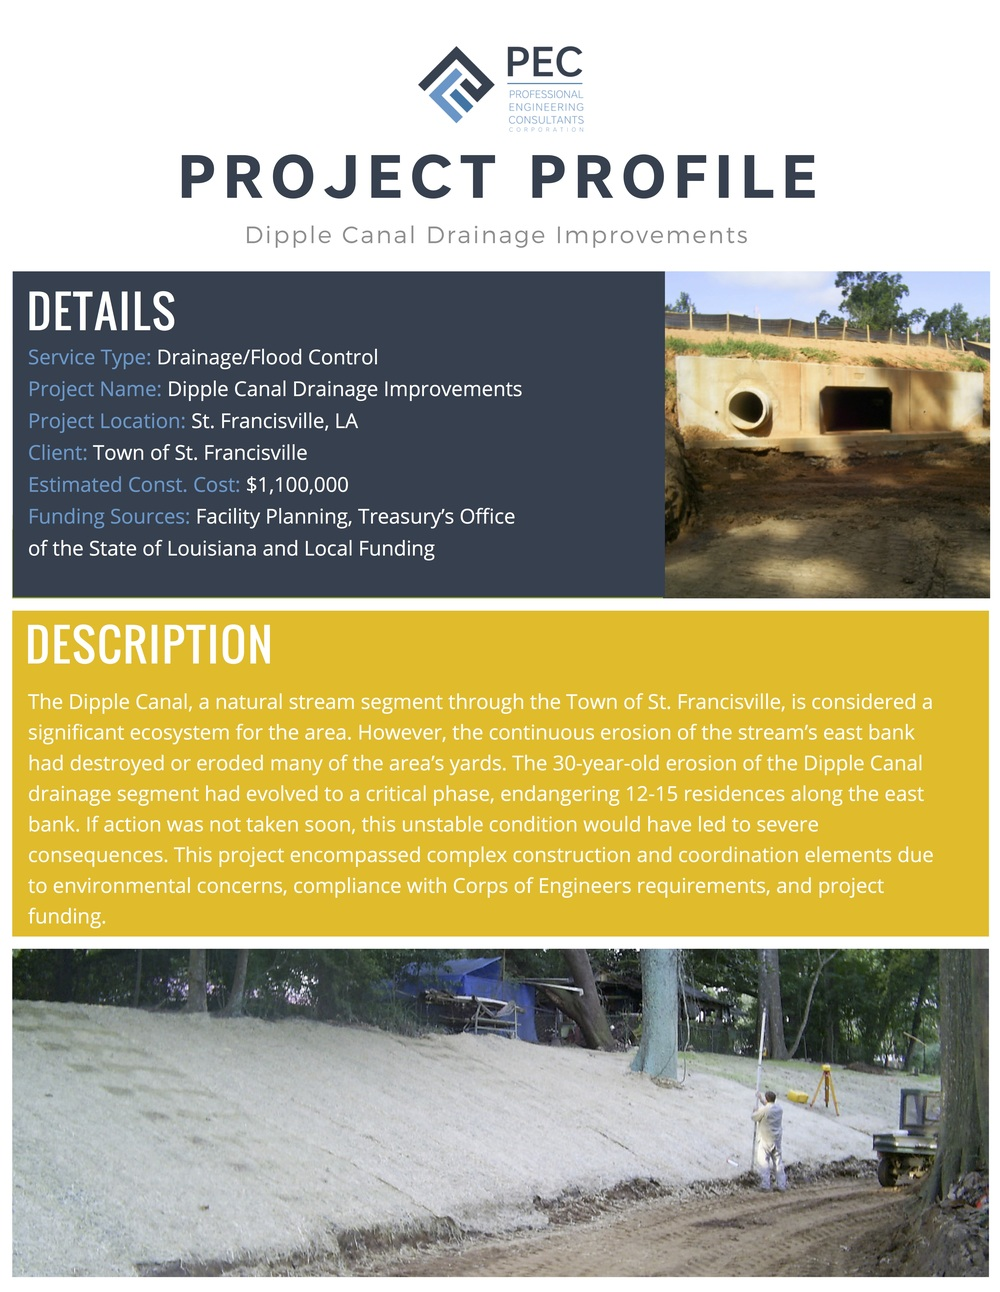 Project Profile_DippleCanalFINAL.jpg